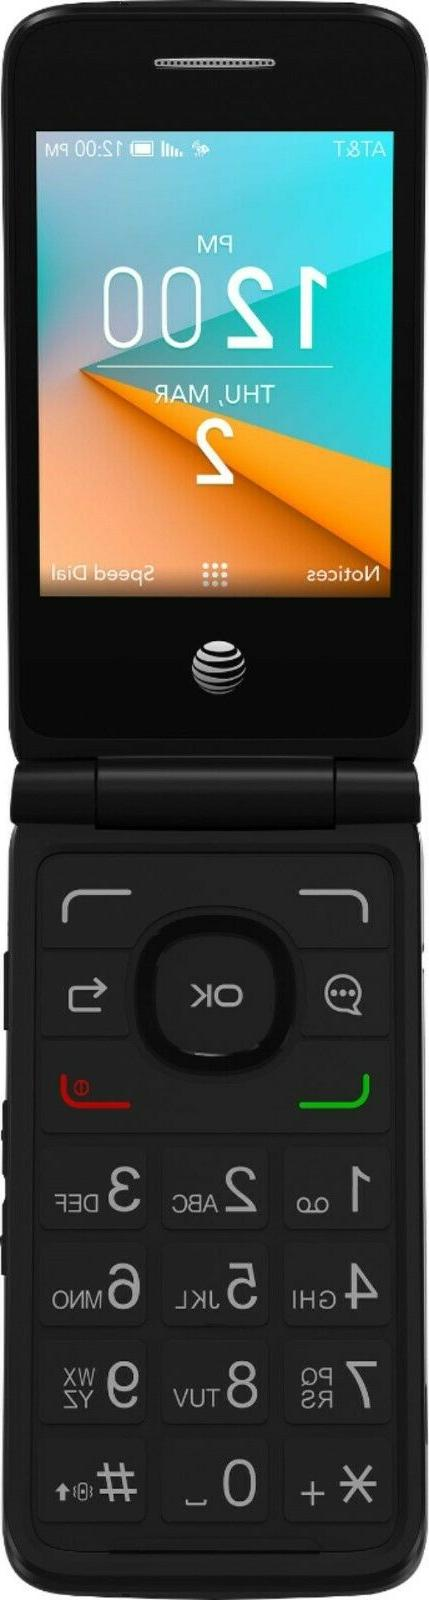 flip cell phone unlocked senior easy to